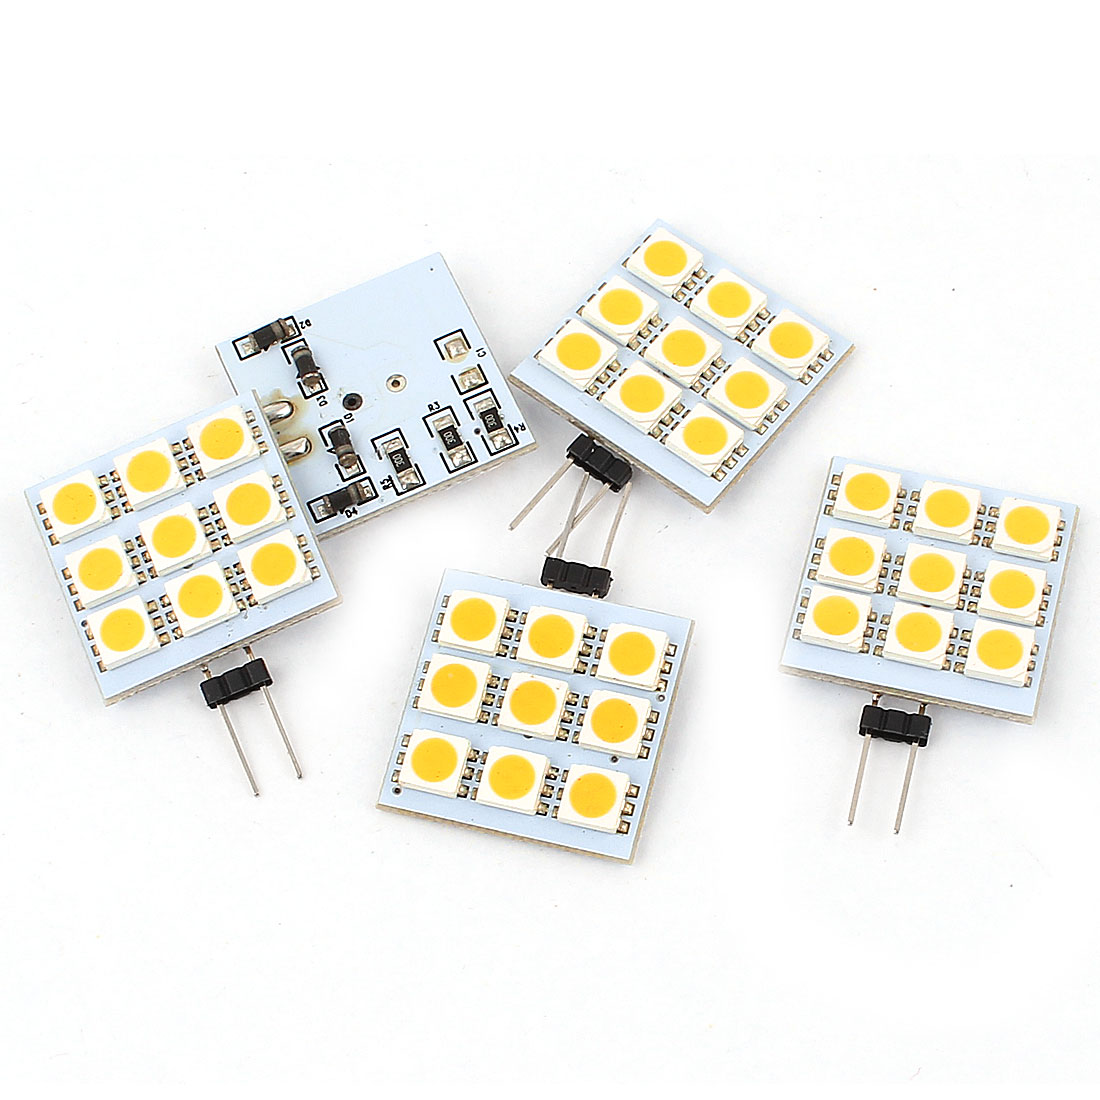 5pcs 90-100LM G4 5050 SMD 9 LED Cabinet Marine Boat Light Bulb Lamp Warm White